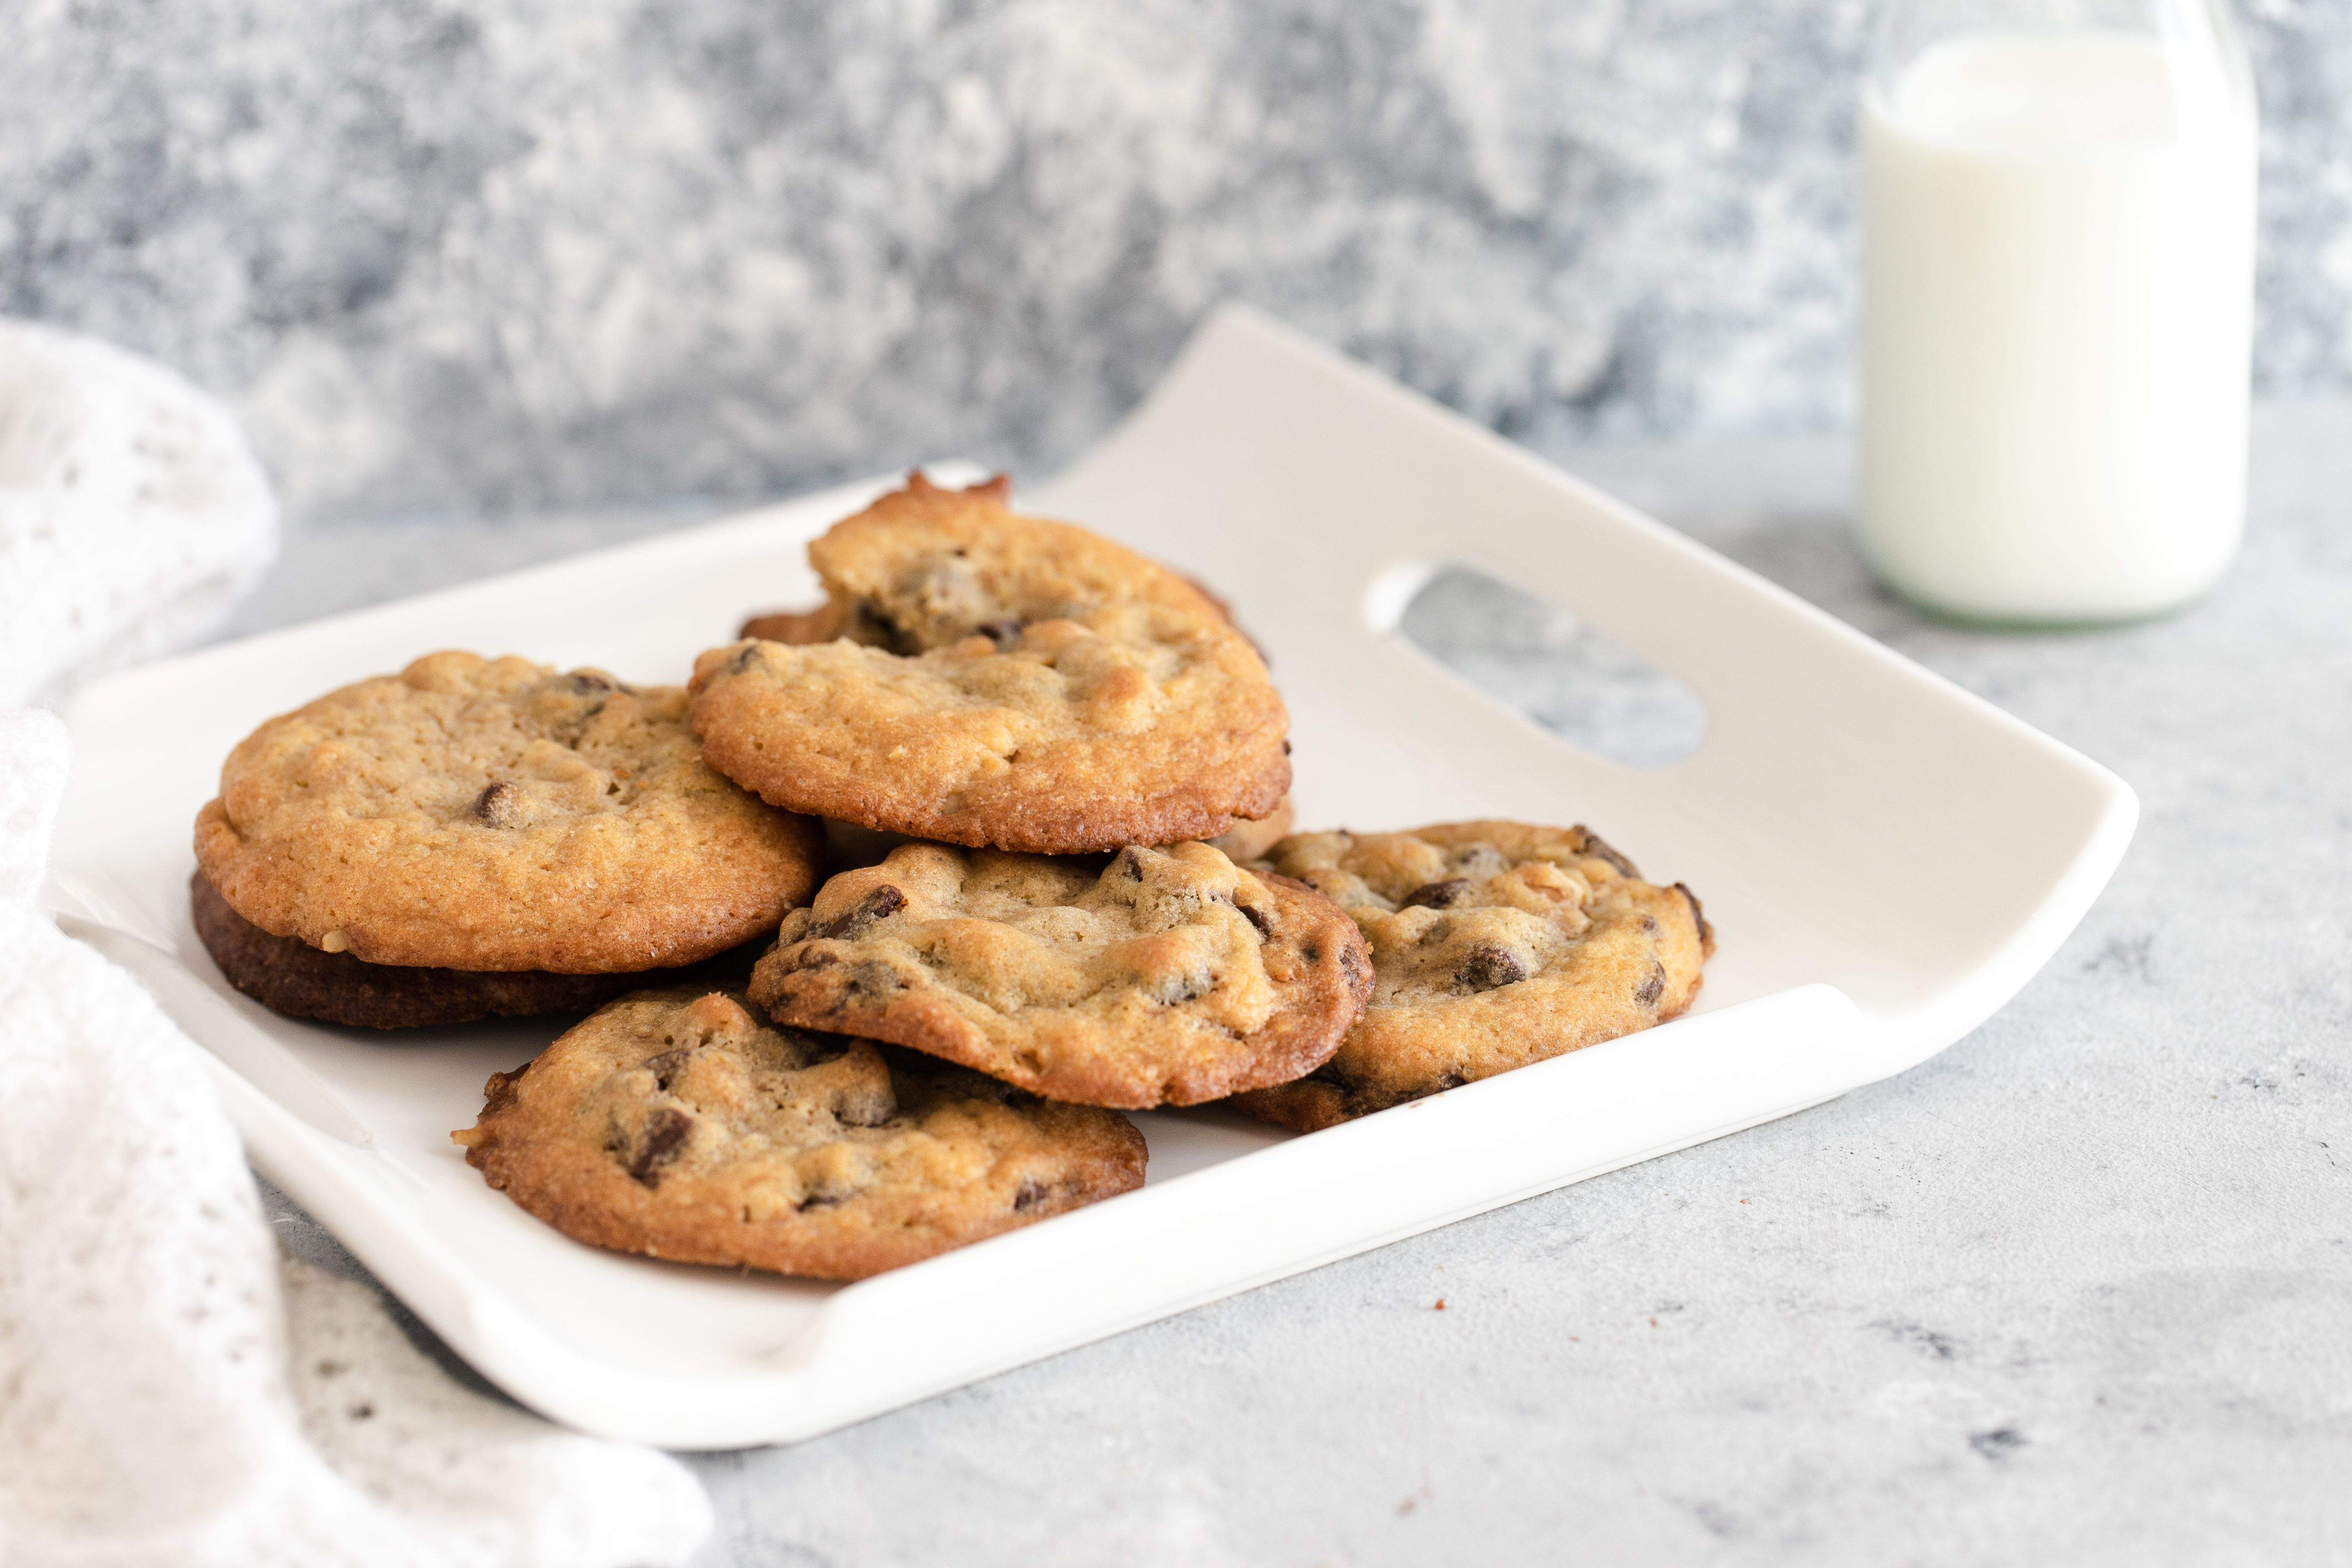 Toll House Cookies recipe